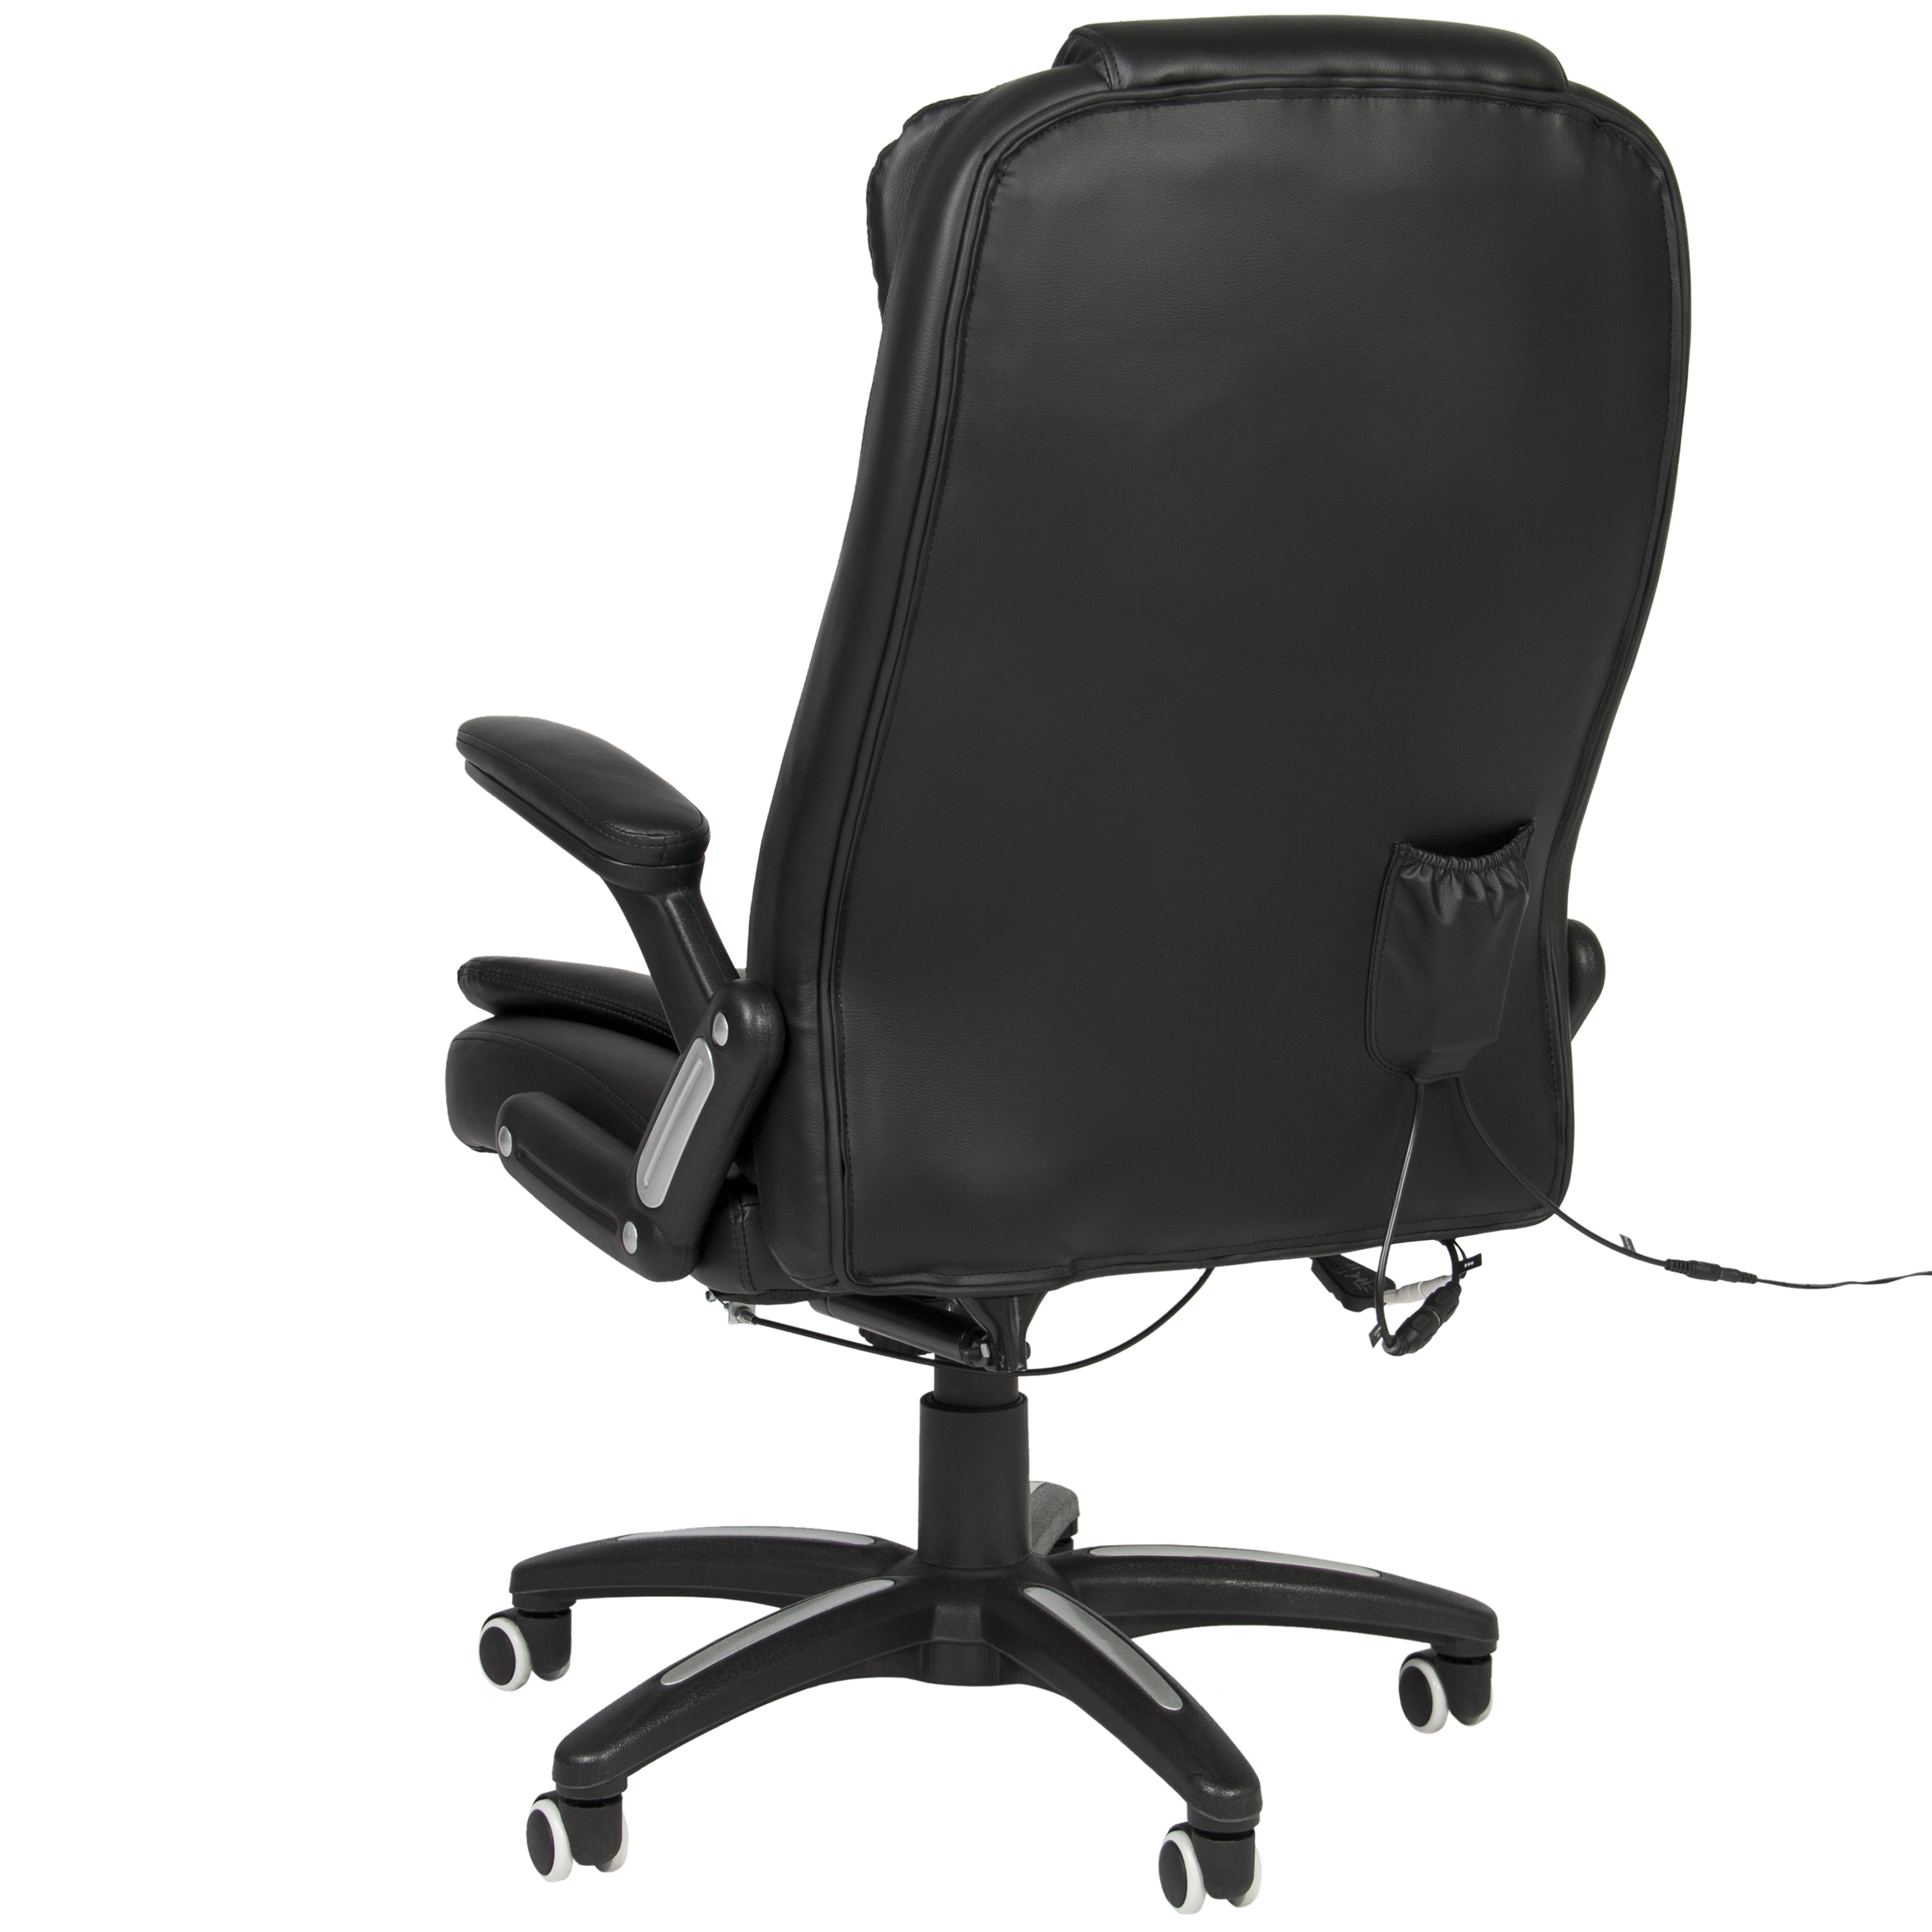 Office Chair Massager Bcp Executive Ergonomic Heated Vibrating Computer Office